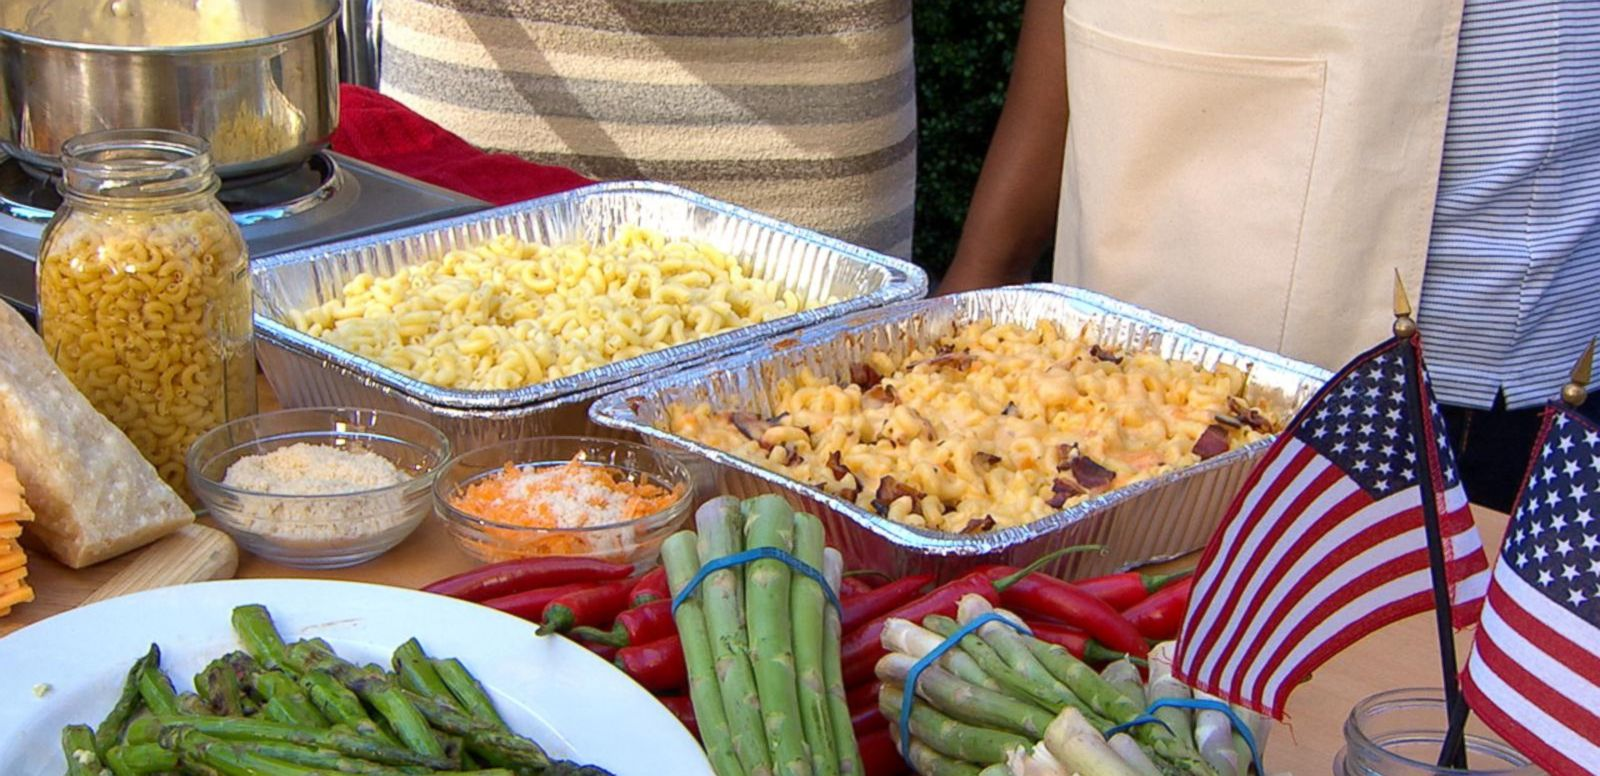 VIDEO: Independence Day Cook-off: Grillmaster Dads Throw Down